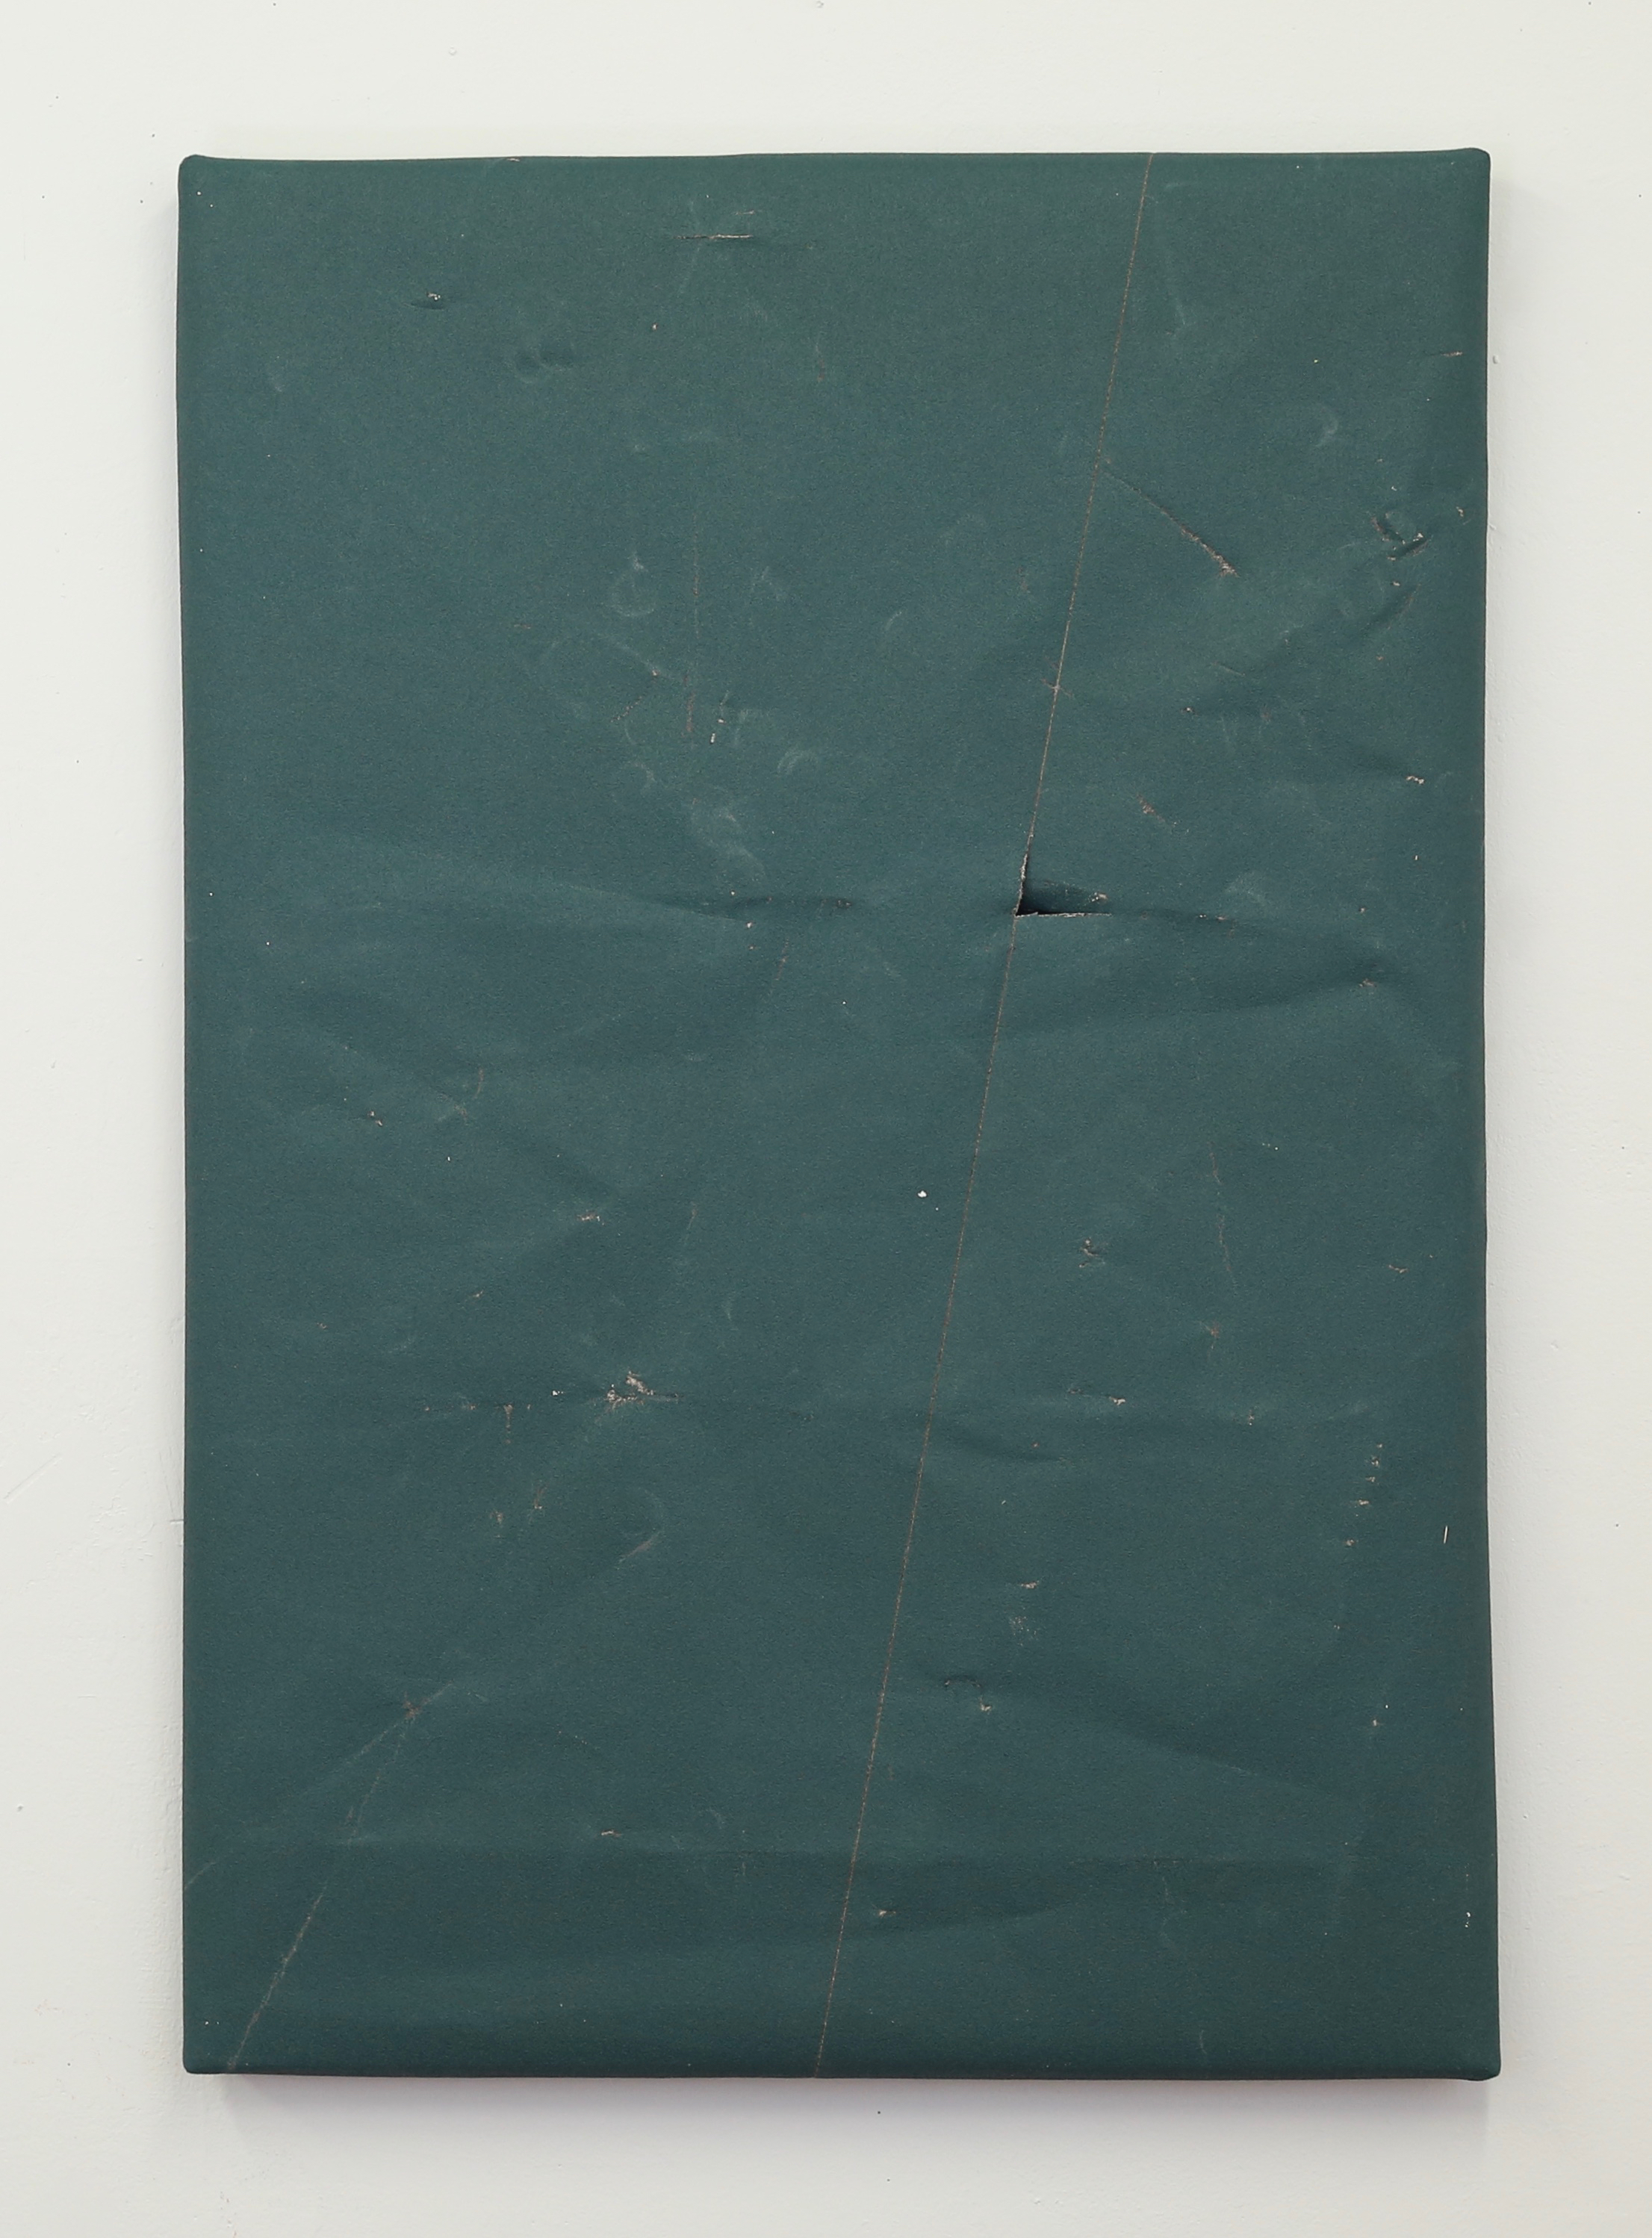 Untitled (Green with Stitching, 80 Grit)